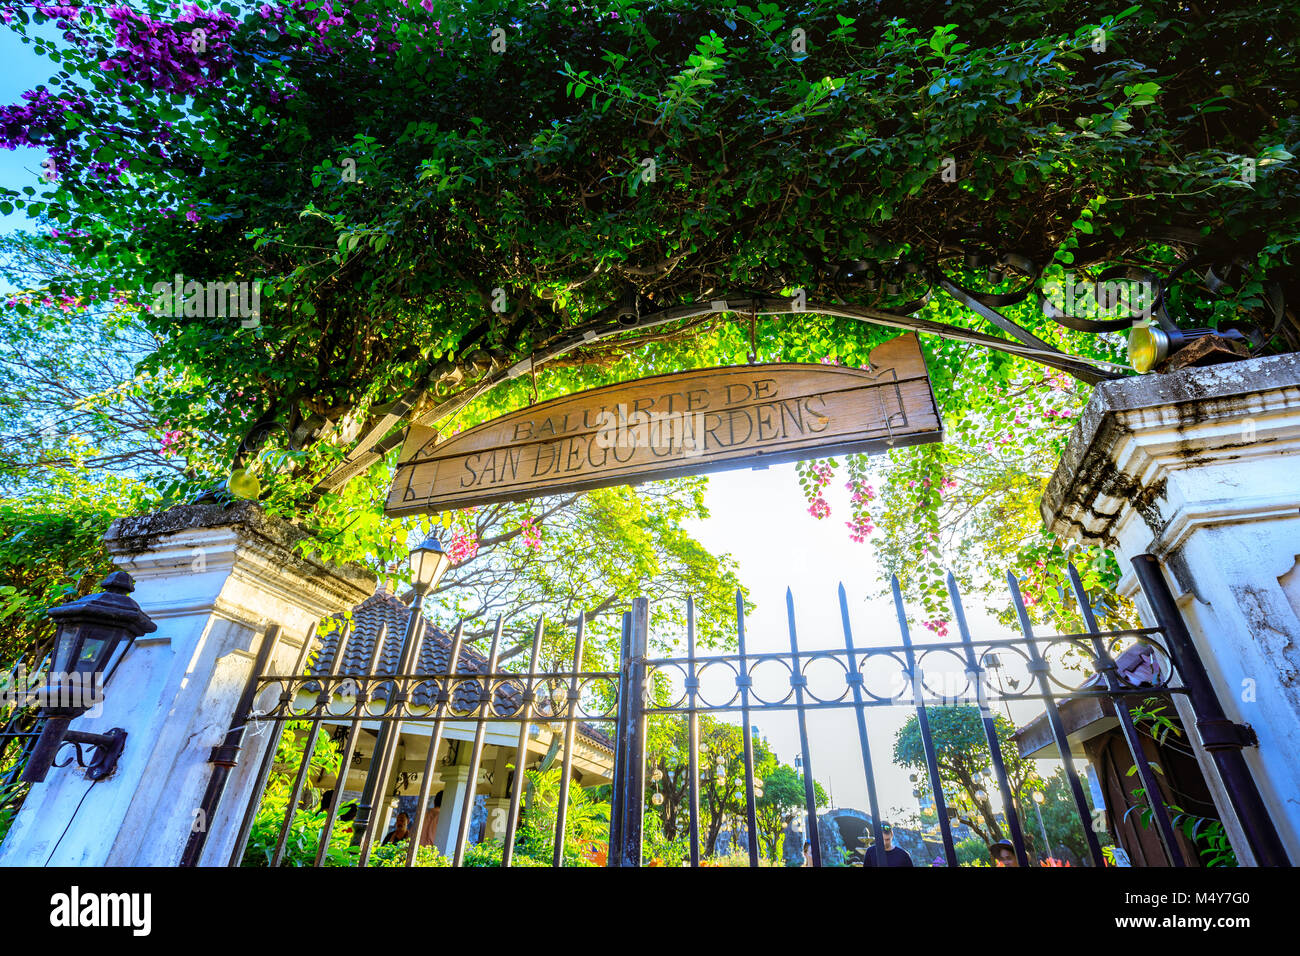 Manila, Philippines   Feb 17, 2018 : Gate Of San Diego Gardens At Spanish  Colonial Intramuros In Manila, Philippines